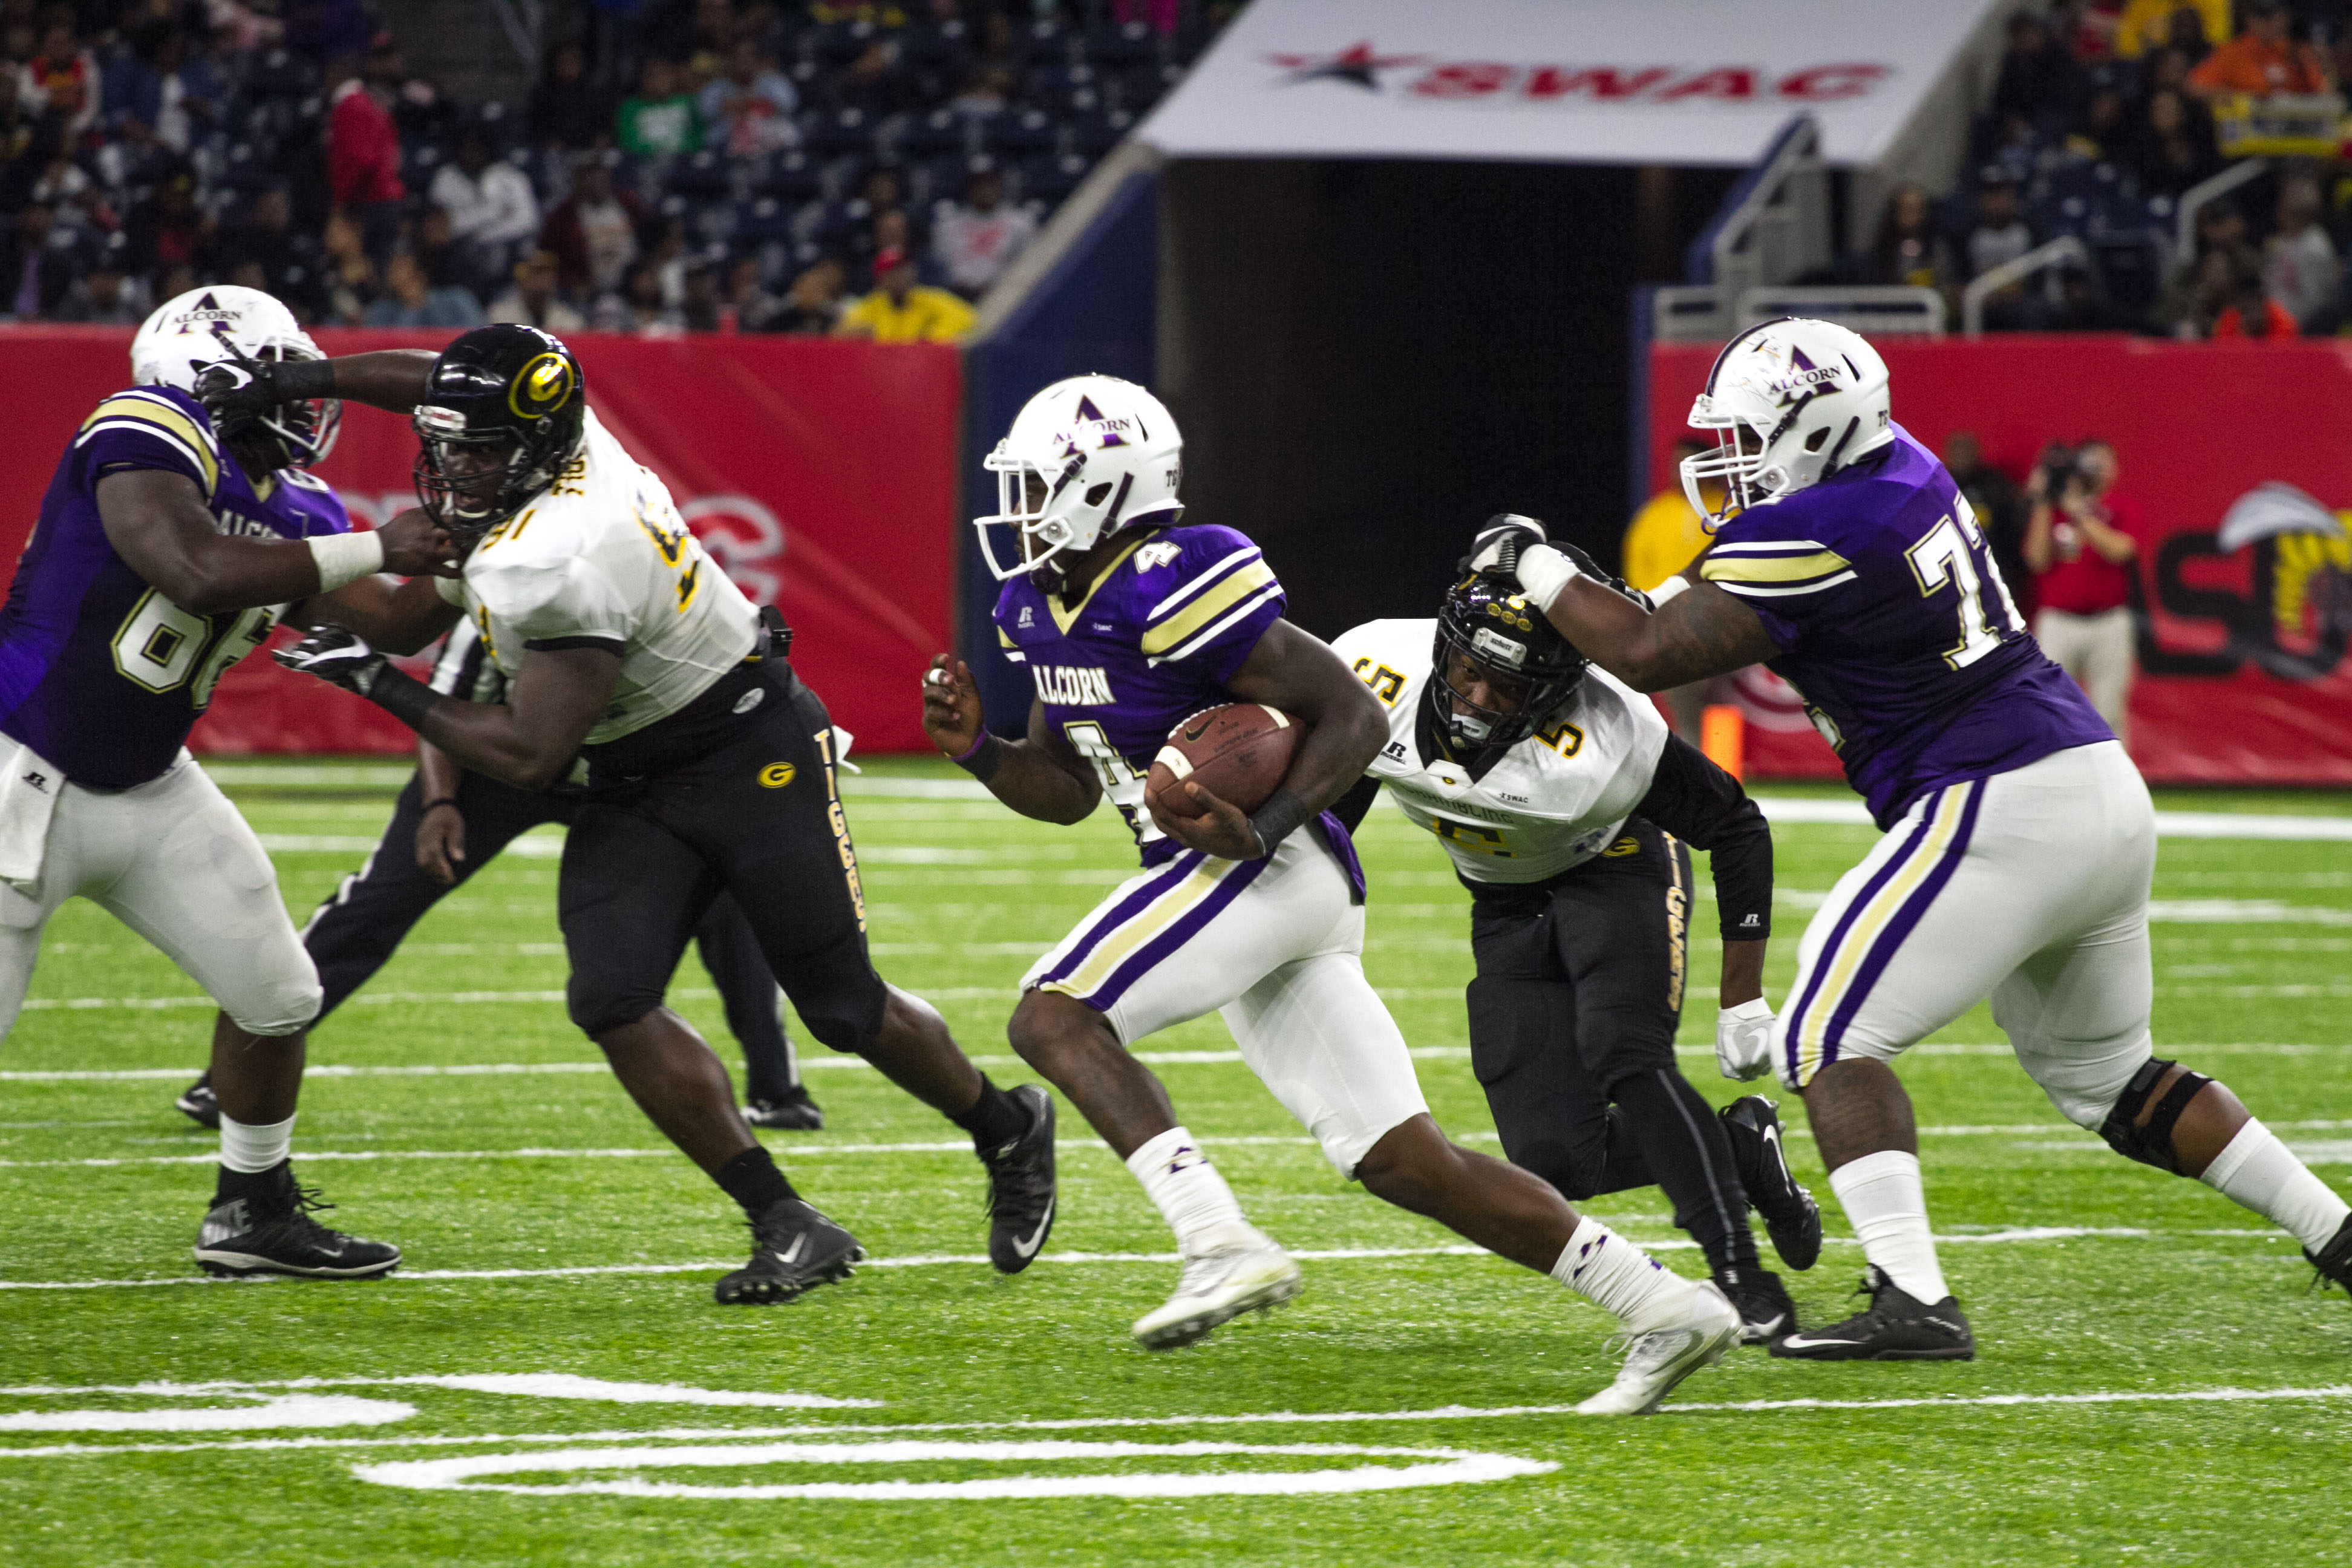 College Football Swac Championship Game Alcorn State Braves Vs Grambling State Tigers The Venture